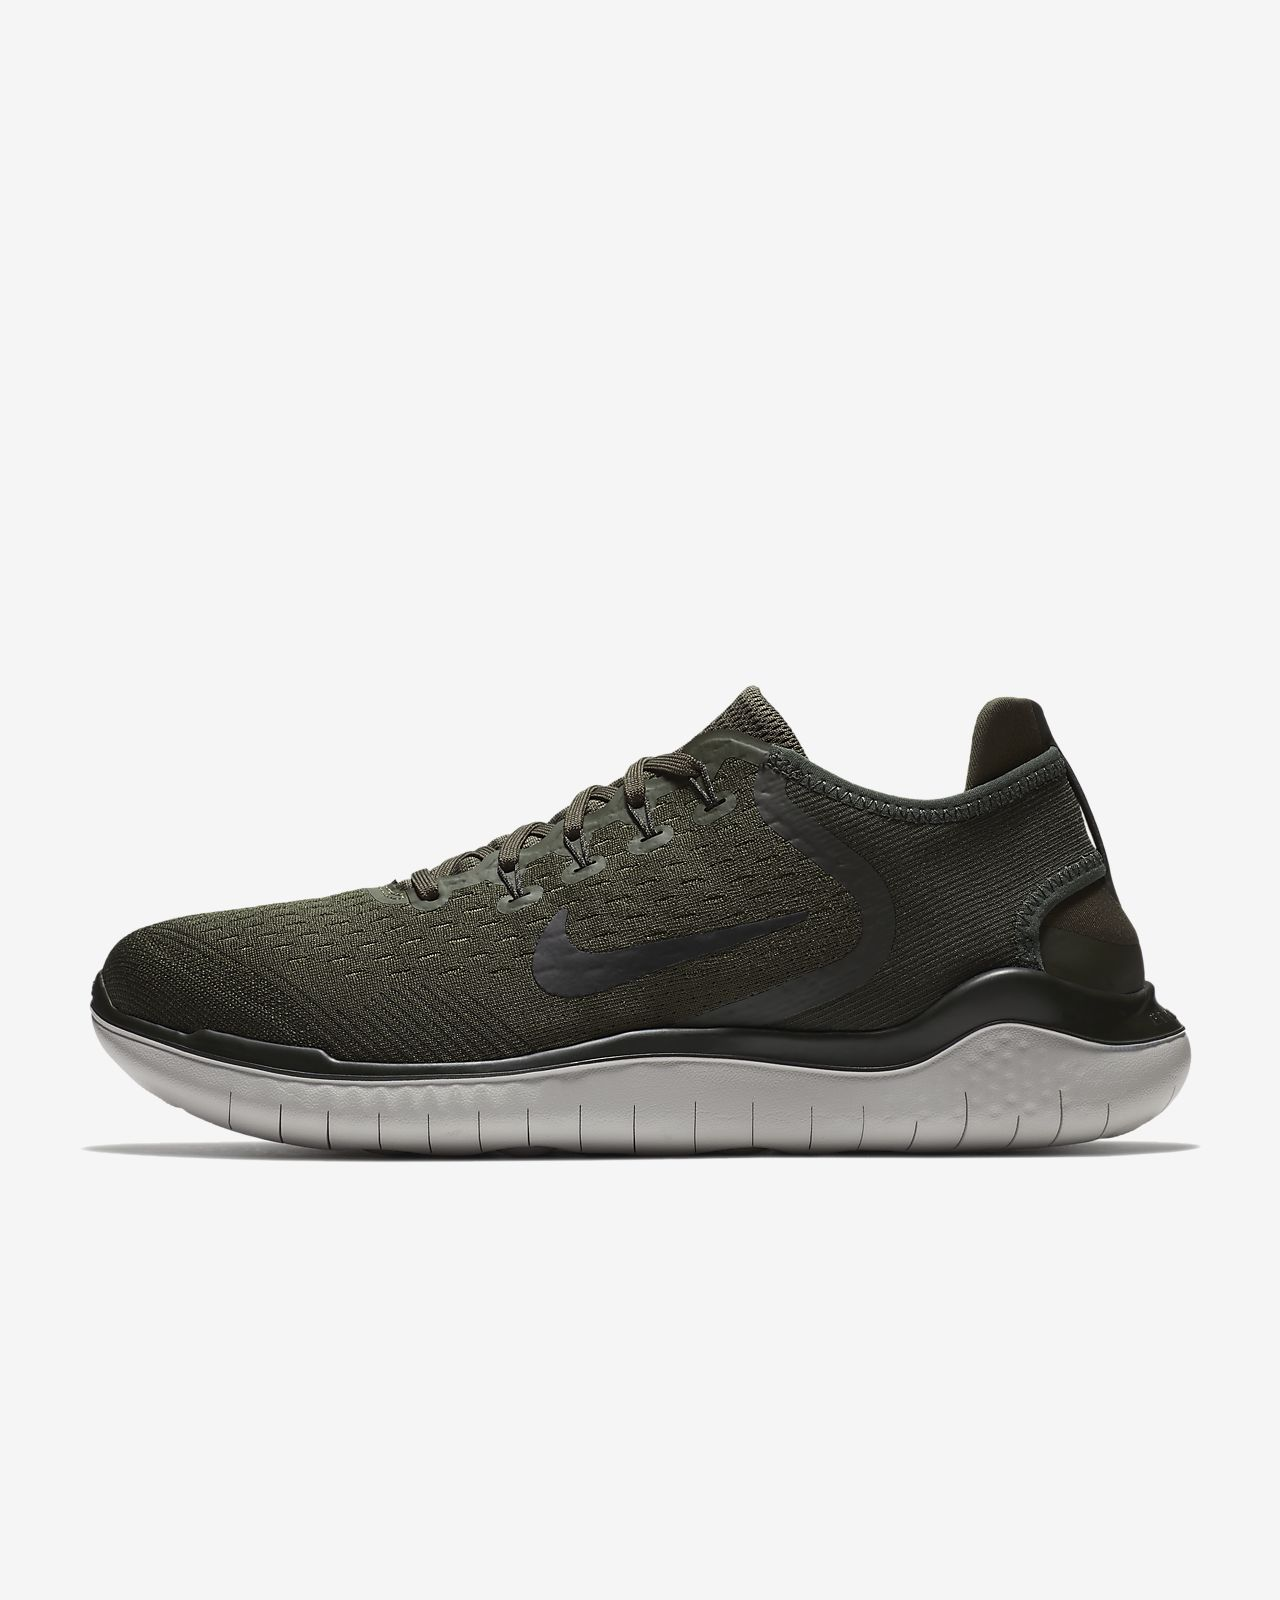 ... Chaussure de running Nike Free RN 2018 pour Homme